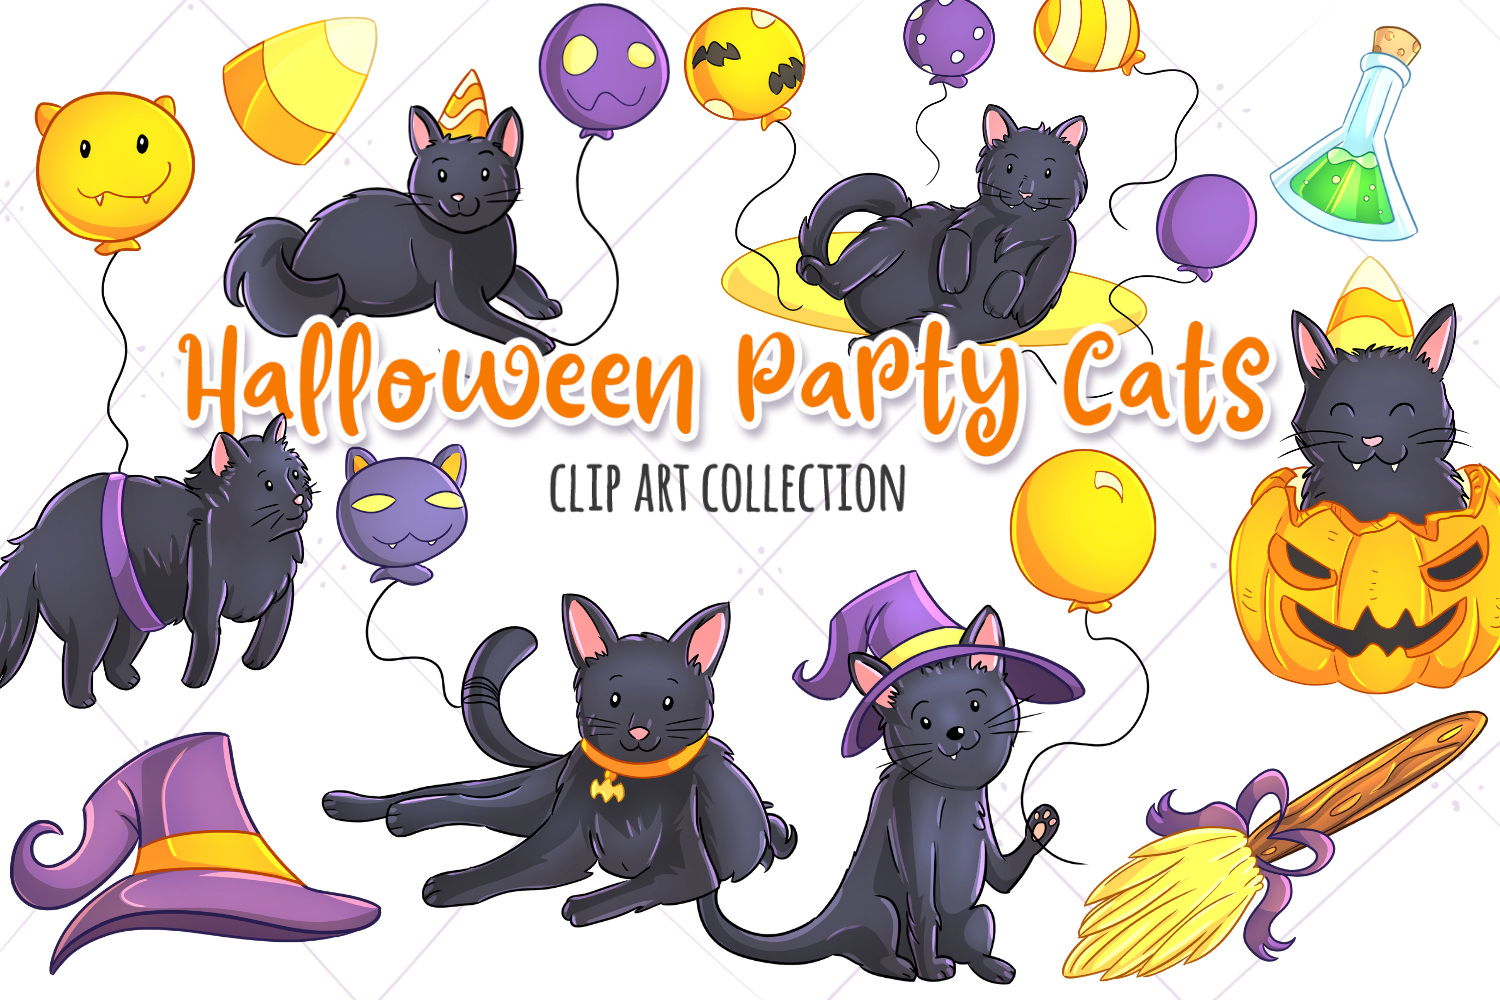 Download Free Halloween Party Cats Clip Art Collection Graphic By for Cricut Explore, Silhouette and other cutting machines.